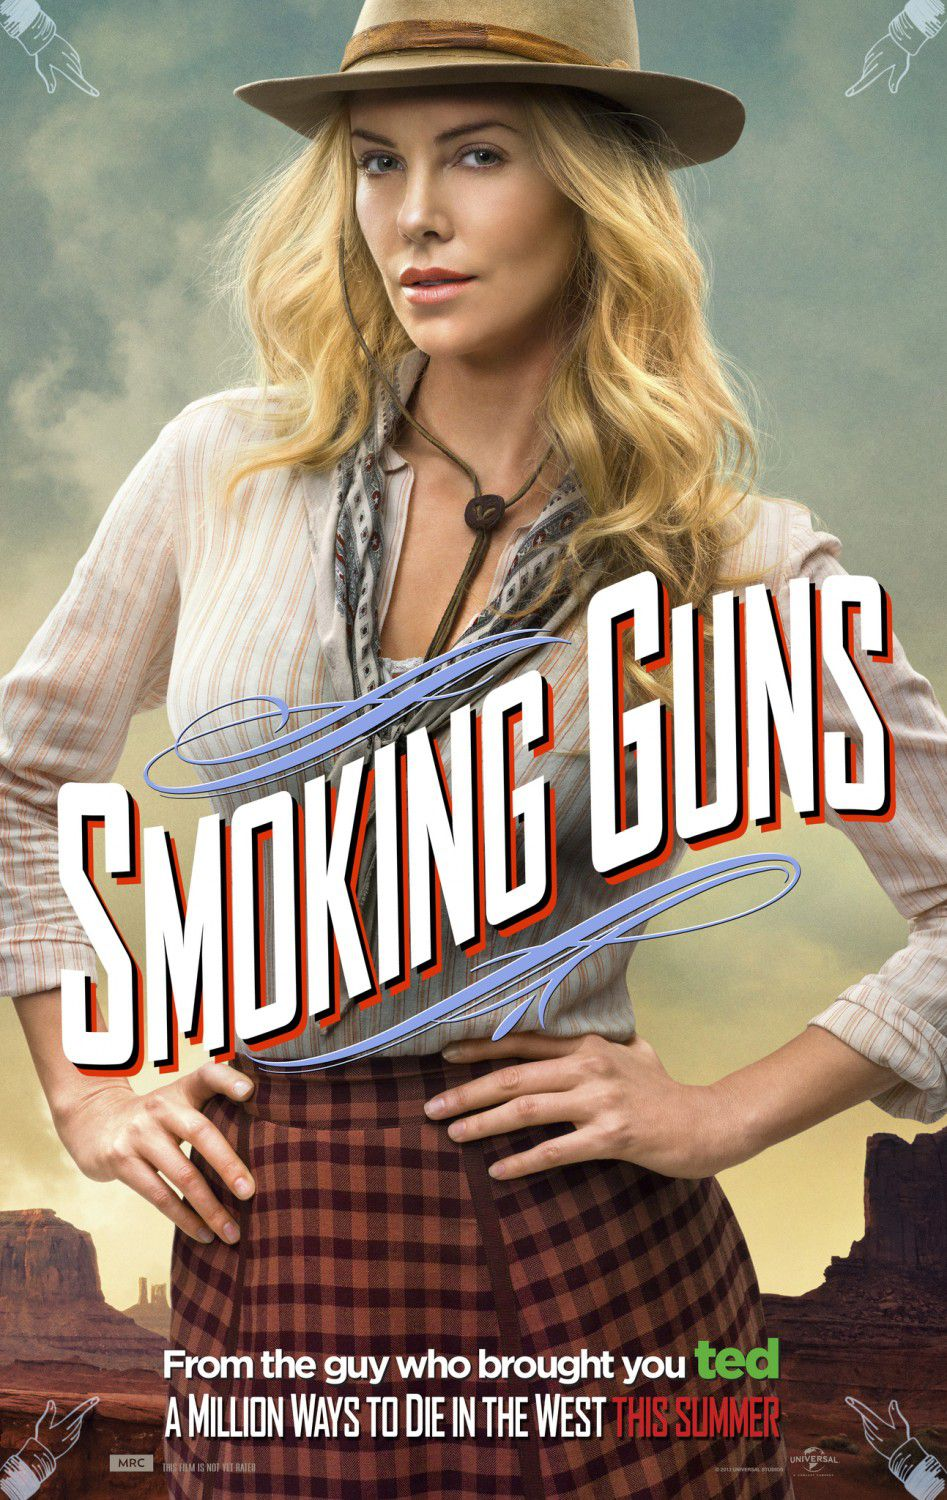 Million ways to Die in the West - Un milione di modi per morire nel West - Smoking Guns - Charlize Theron